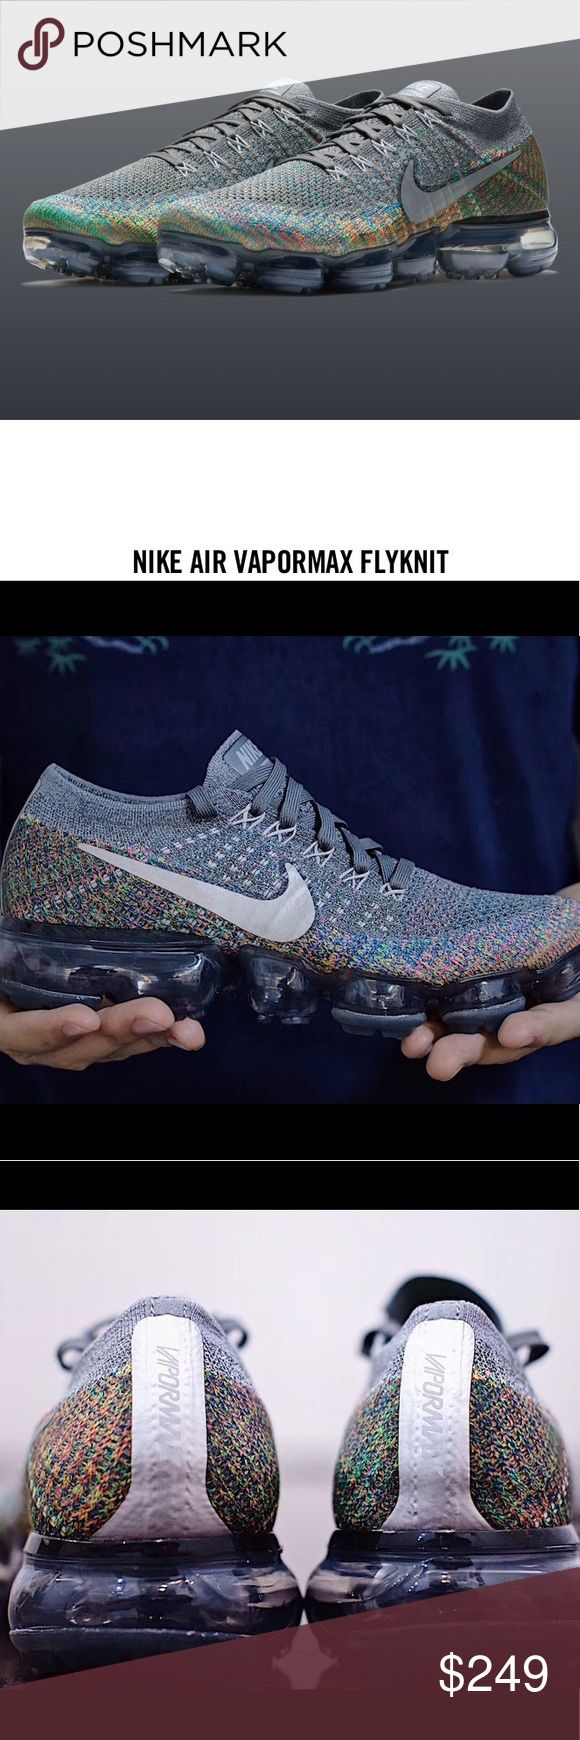 """PRE-RELEASE🆕Vapormax """"Kaleidoscope""""Sz 12, W/Rcpt! Be the FIRST ONE TO HAVE THESE! They are shipped with authenticity documents from Nike. Won't be released publicly for a few weeks, and the MultiColor design is amazing, as well as the """"reflective silver"""" on the rear label. This shoe features a grey Flyknit upper and the striking rainbow accents is seen on the lower half for a unique two-tone look. Reflective white/silver swooshes on the sides and a clear translucent VaporMax sole completes…"""